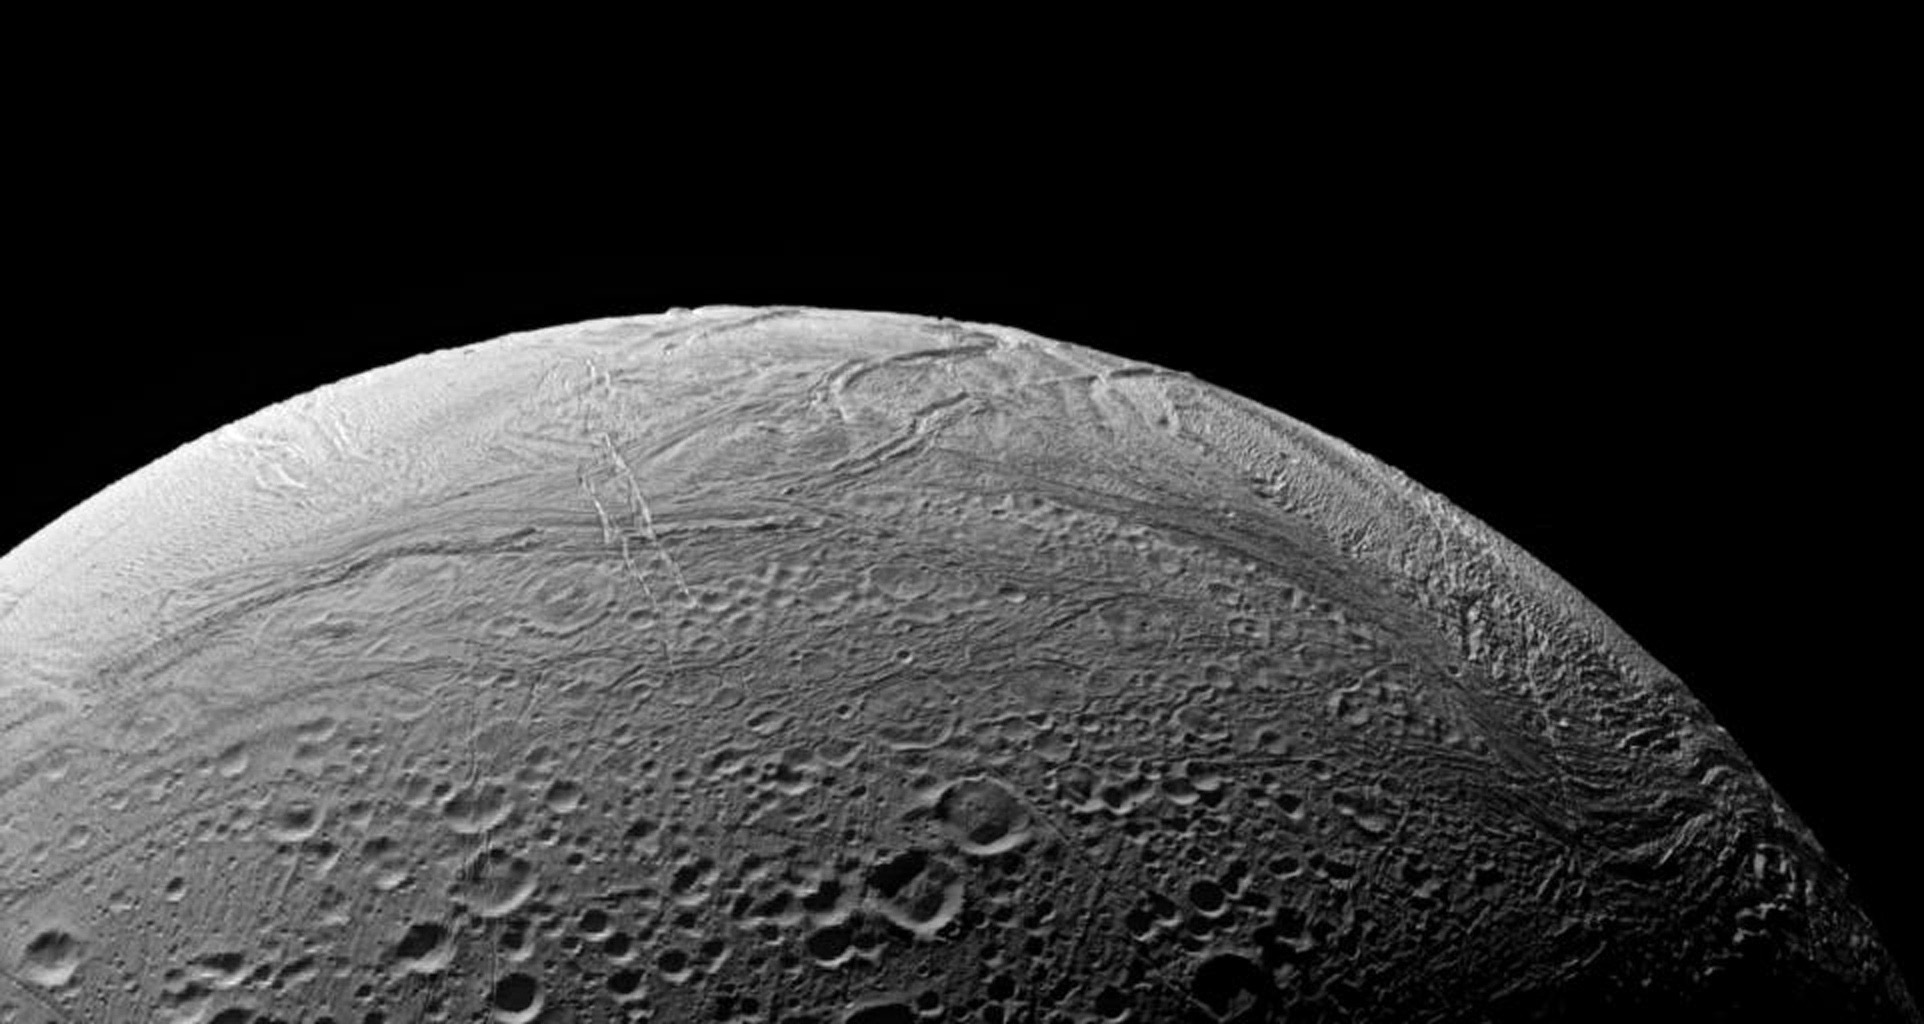 The wrinkled border of Enceladus' south polar region snakes across this view from NASA's Cassini spacecraft, separating fresher, younger terrain from more ancient, cratered provinces.